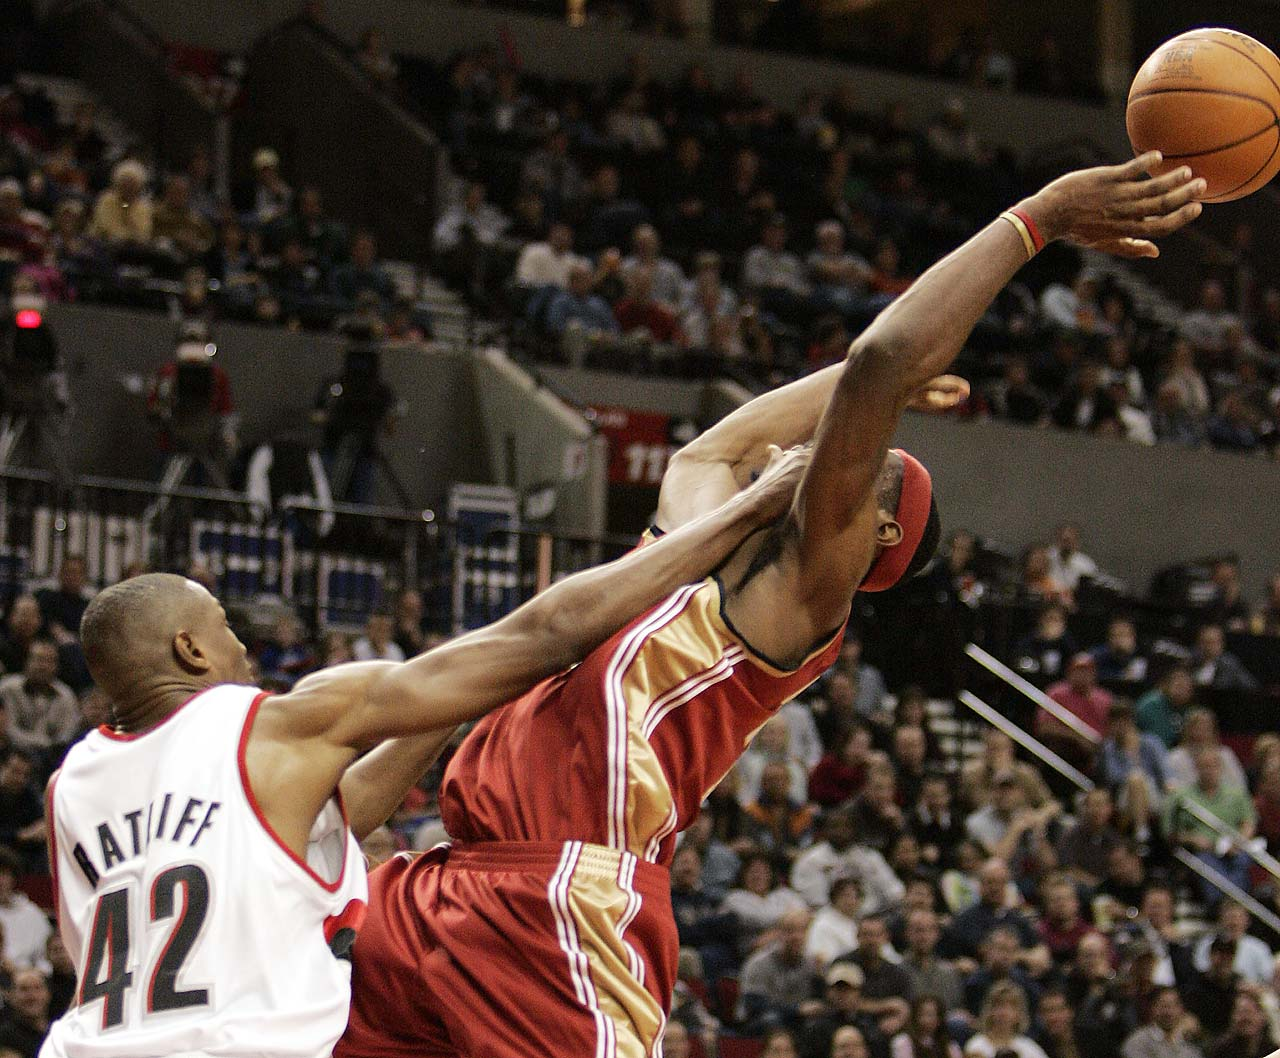 LeBron James is fouled going to the hoop by rail Blazers center Theo Ratliff during a Jan. 15, 2006, game in Portland.